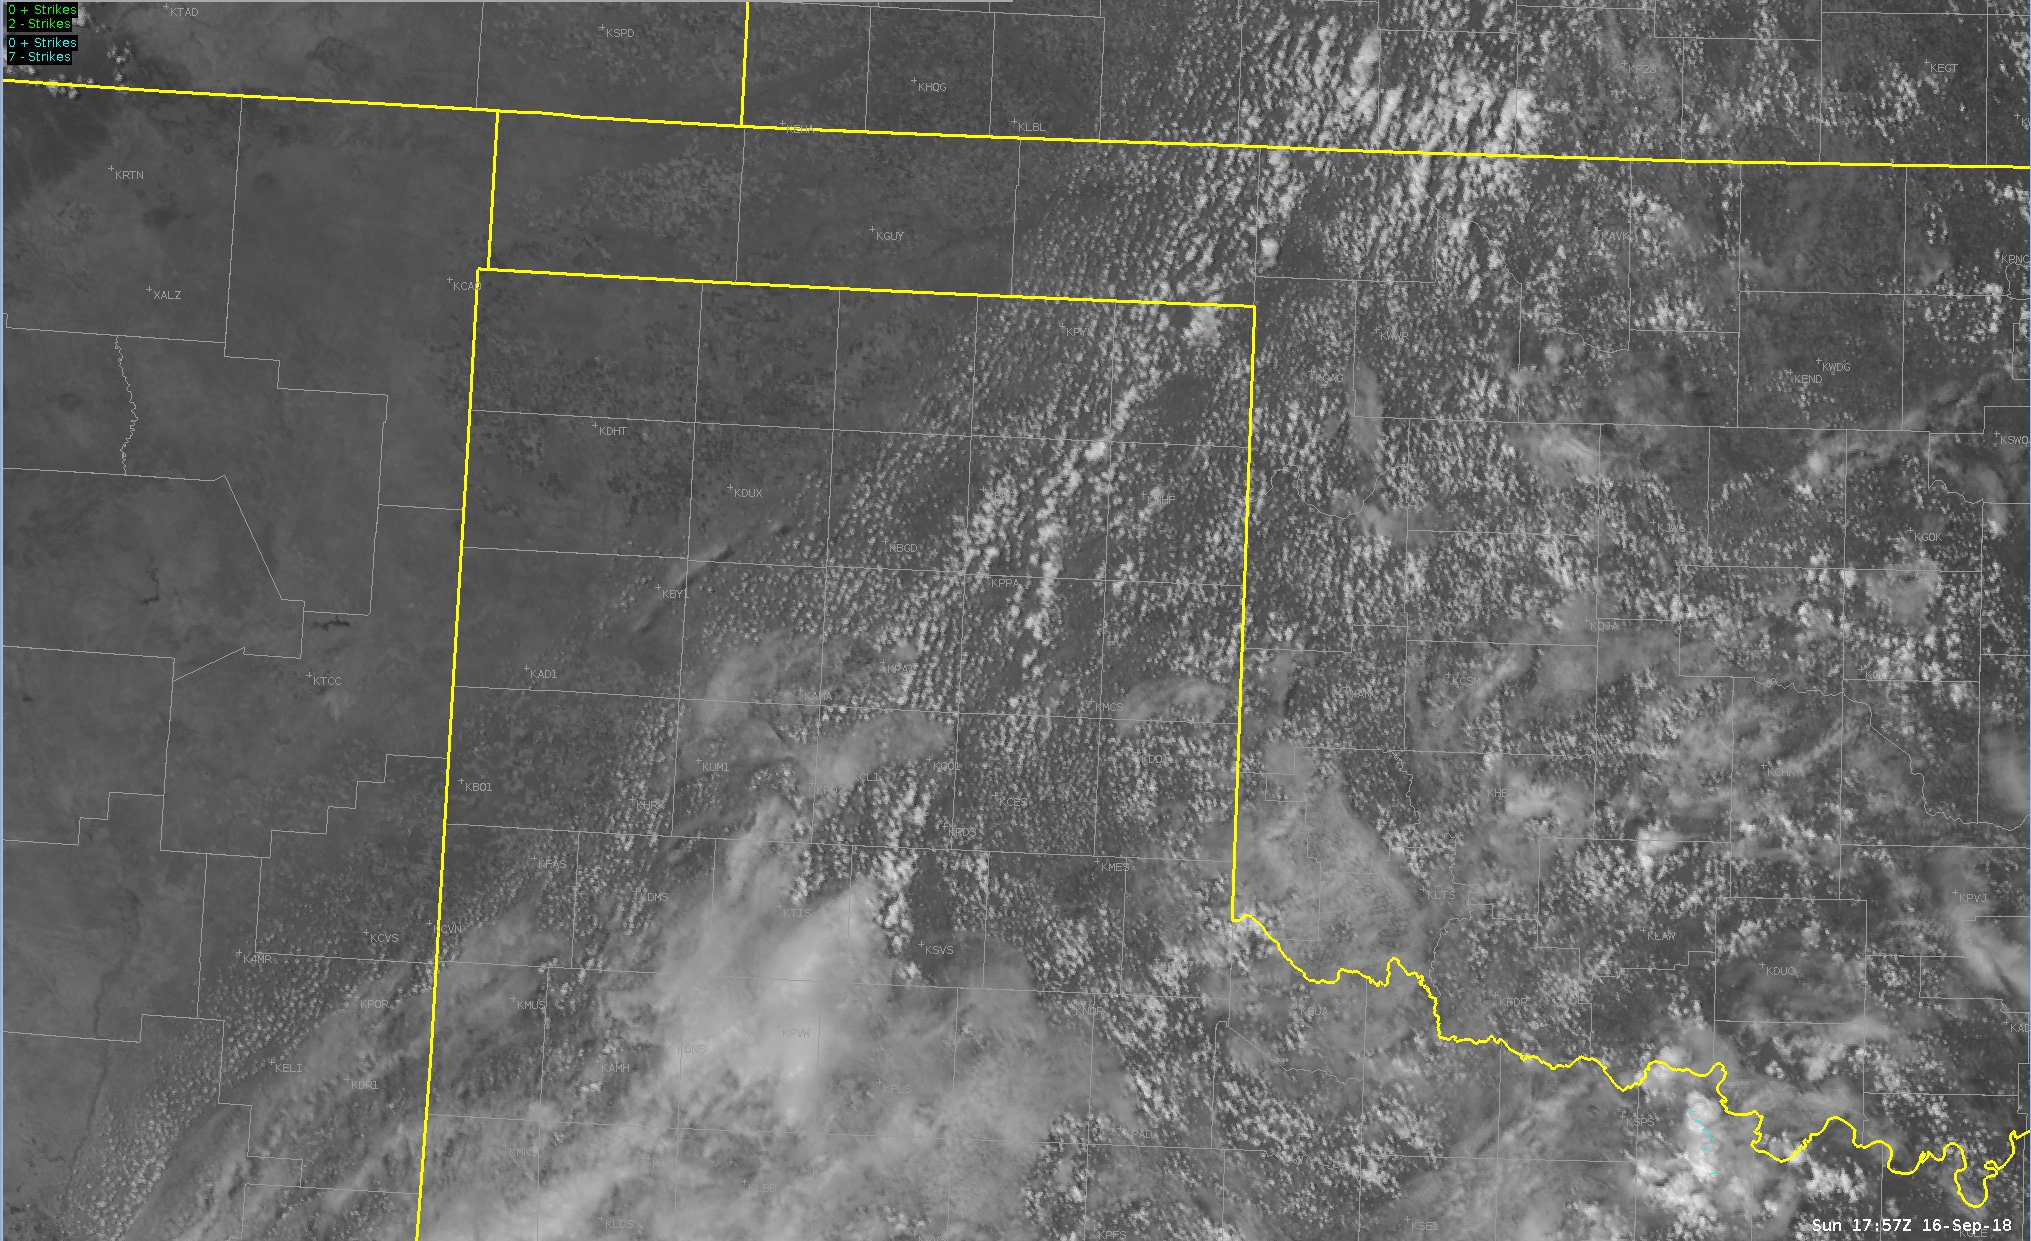 Cumulus clouds seen over SE 1/2 of Combined TX/OK Panhandles from lingering tropical moisture. #txwx #phwx https://t.co/RjN1tzmBl6